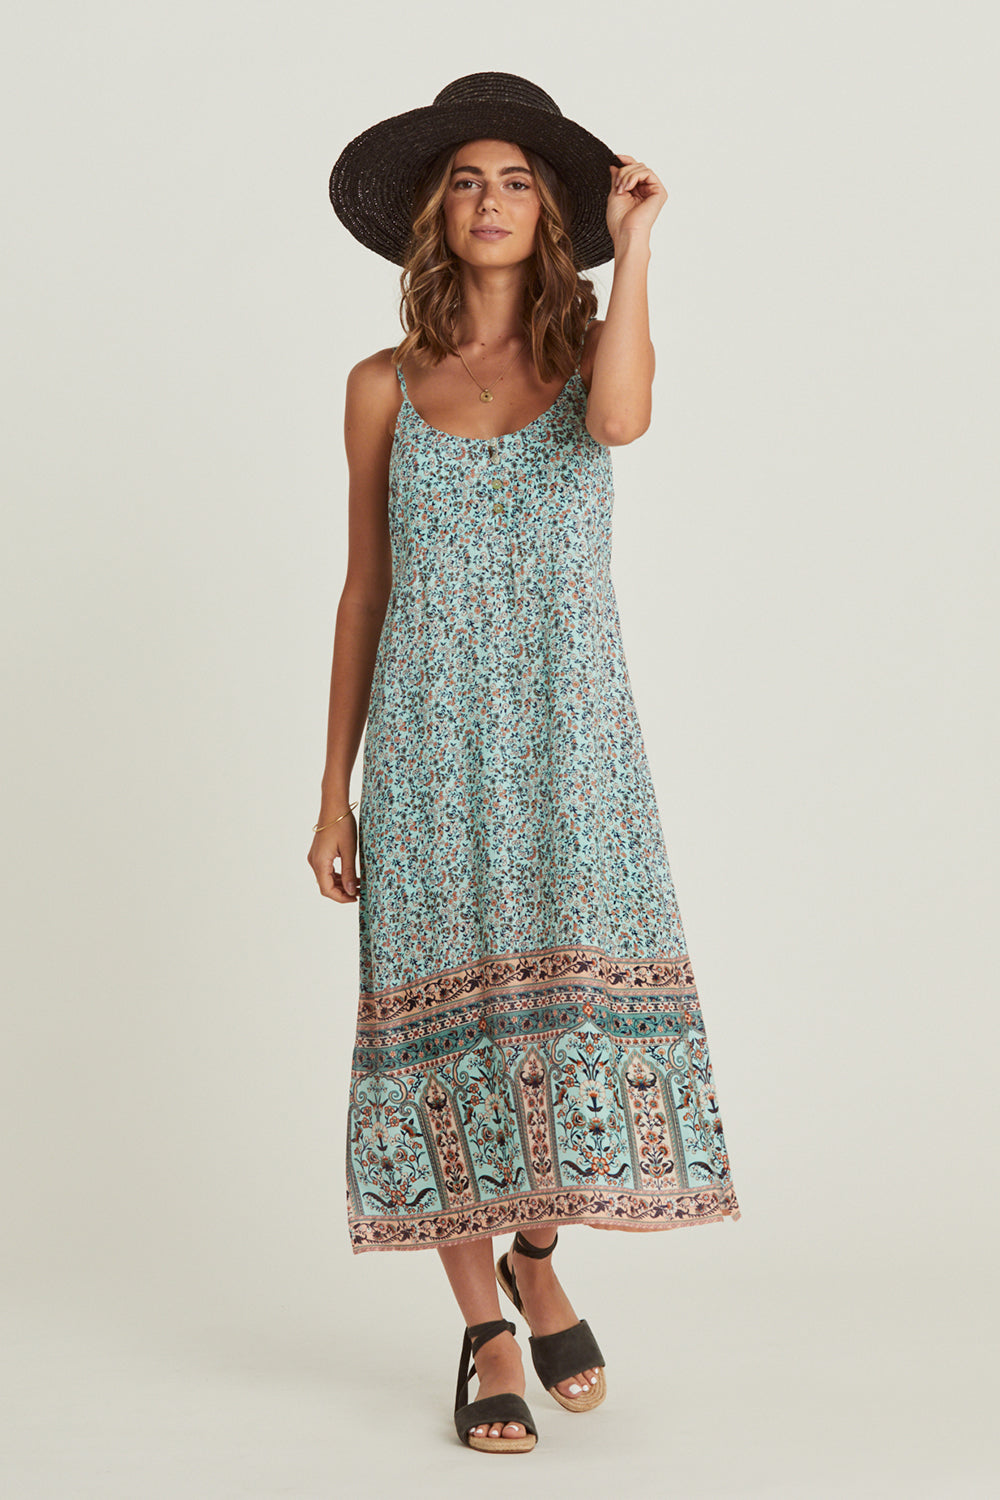 Island Slip Dress in Lagoon